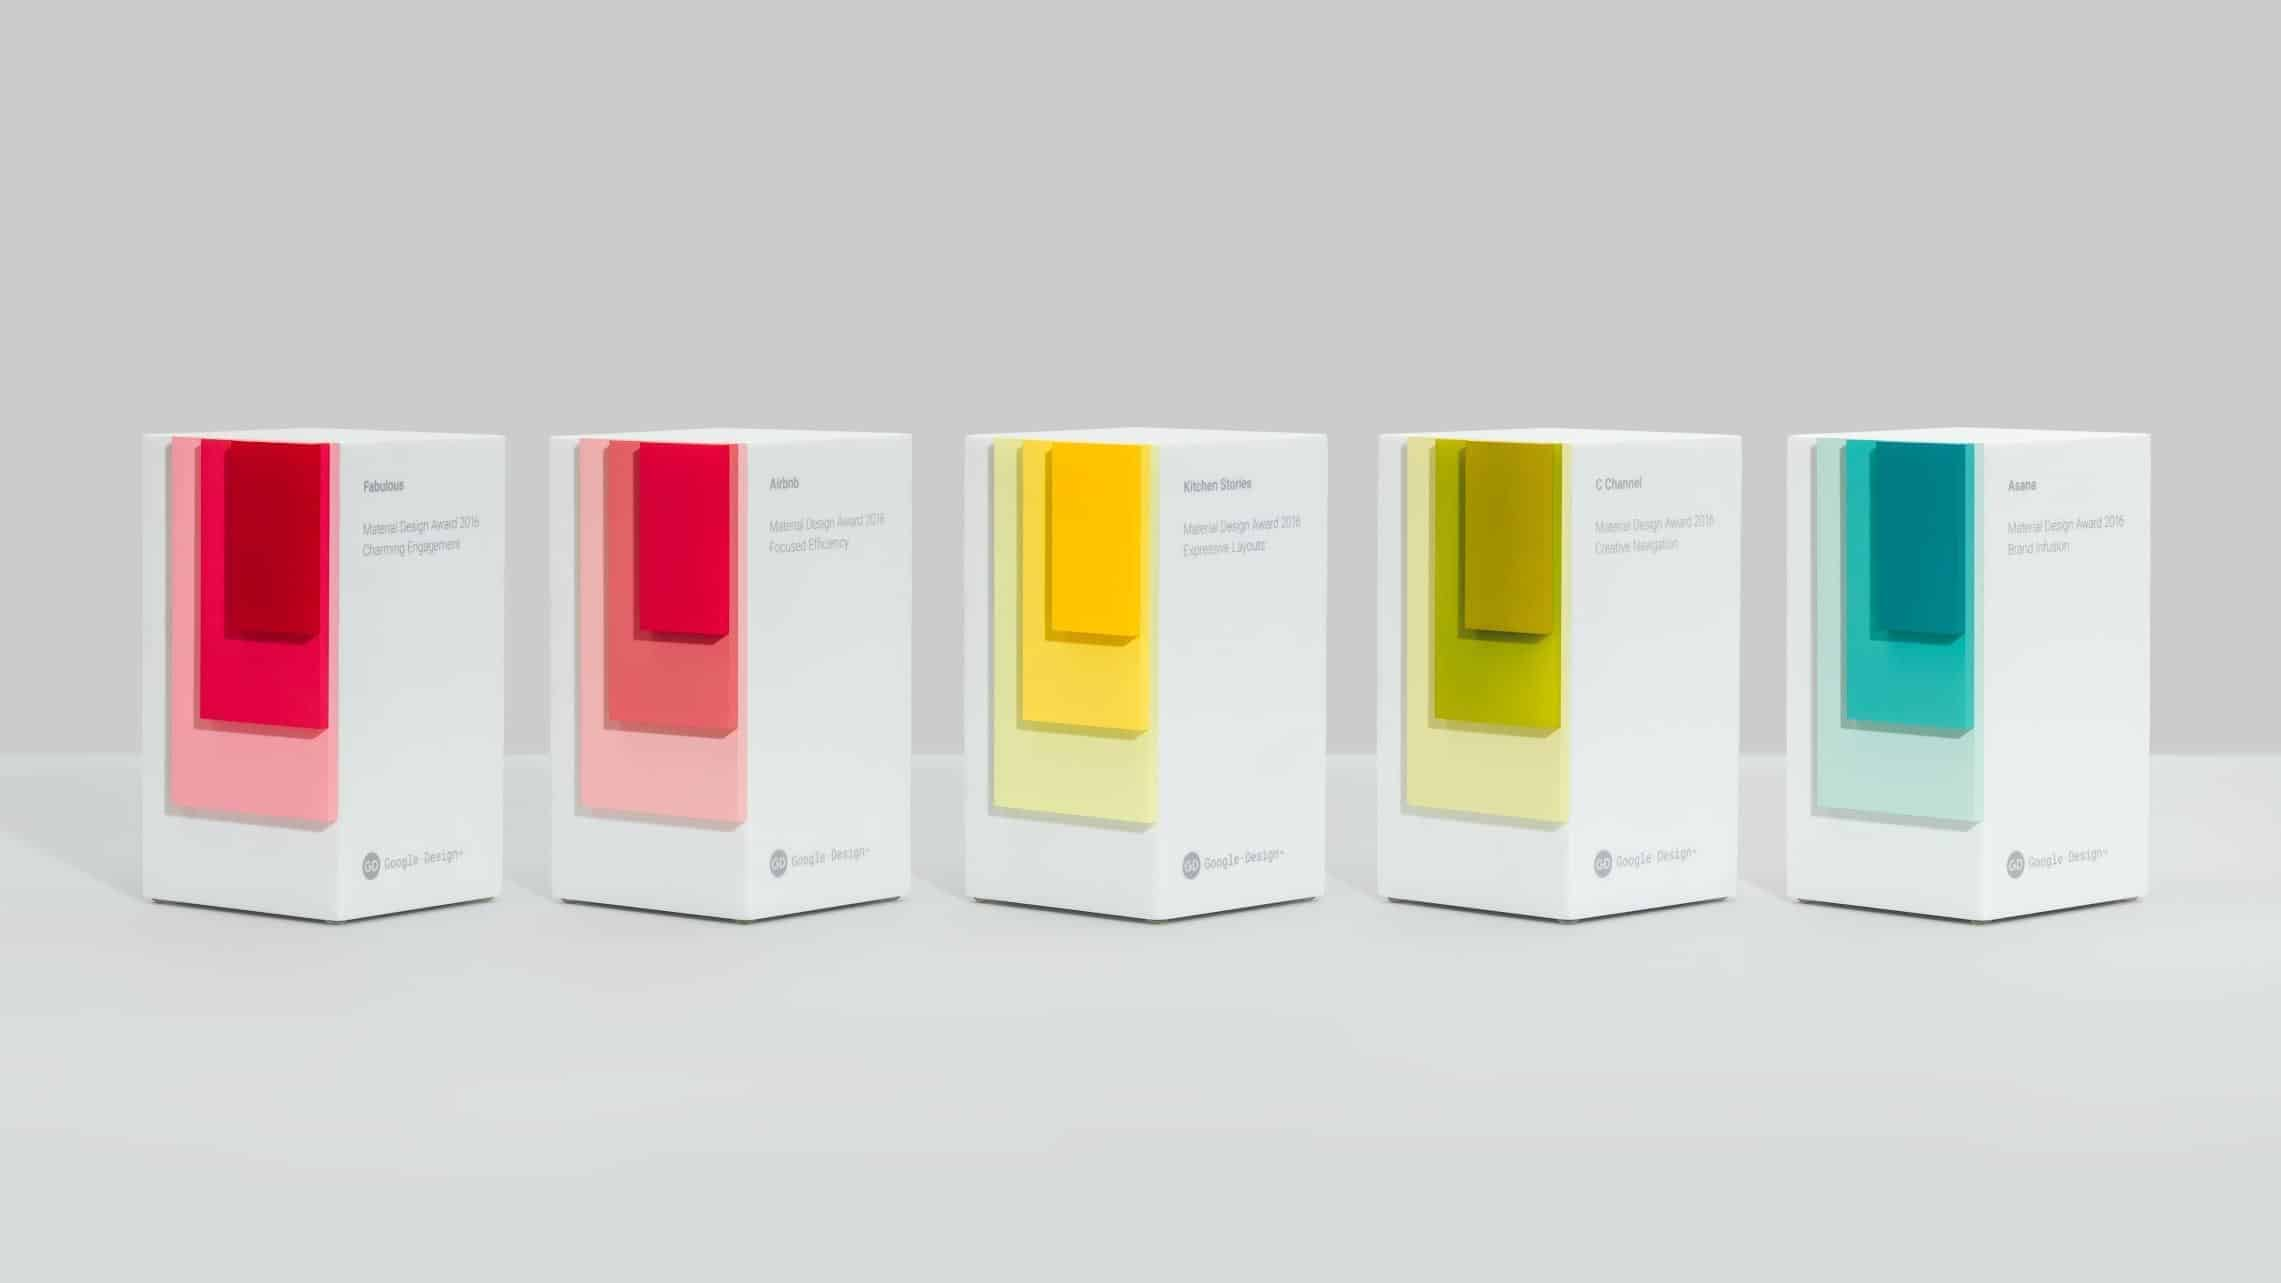 Material Design Awards 2016